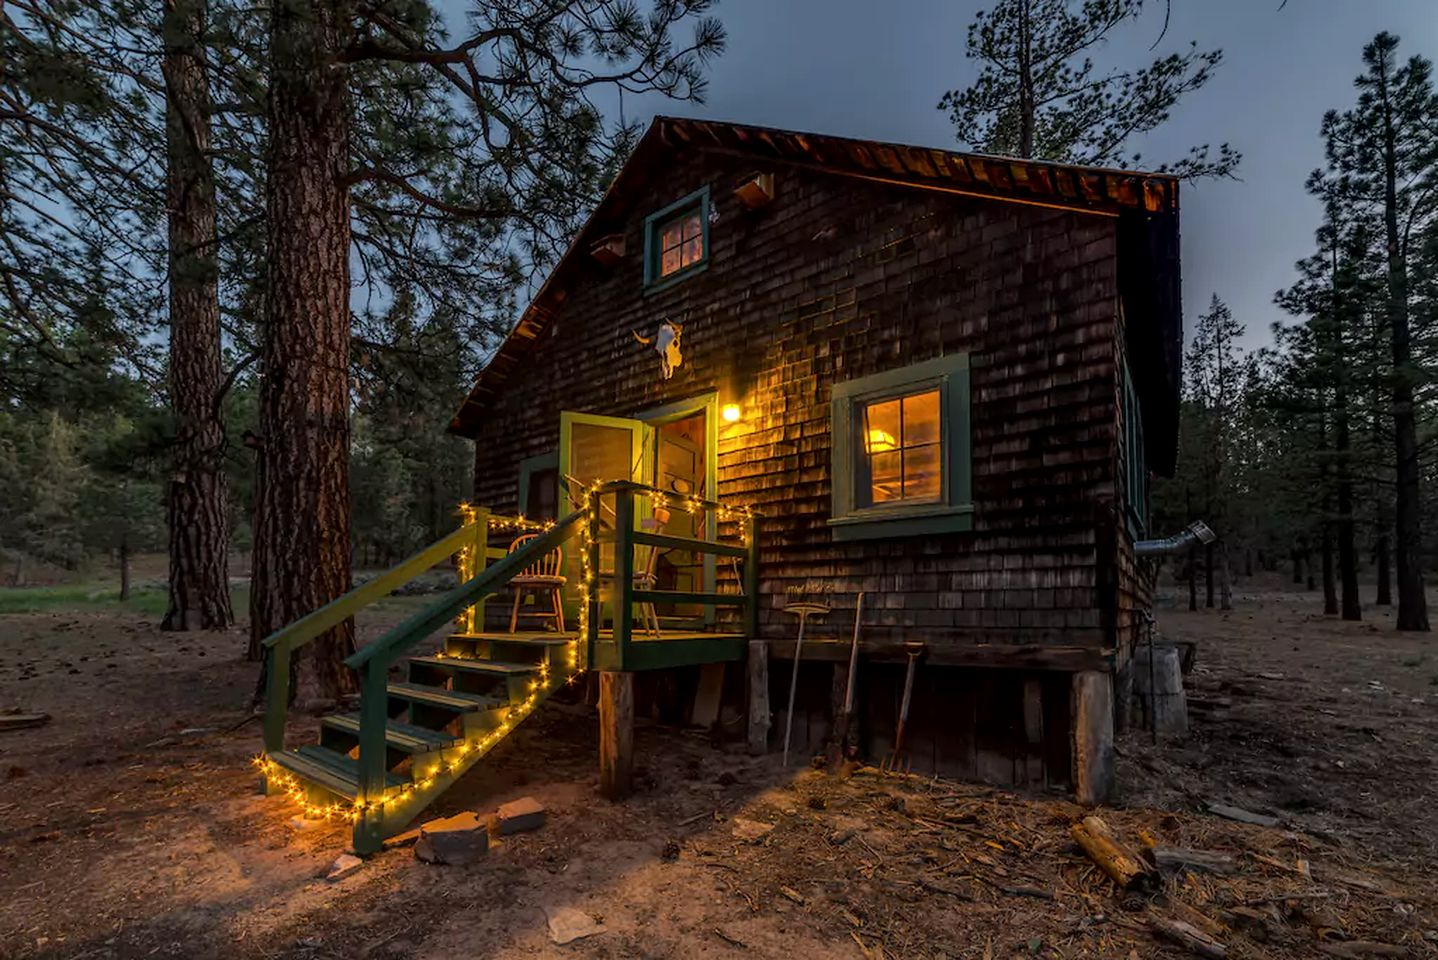 Cabins (Big Bear City, California, United States)